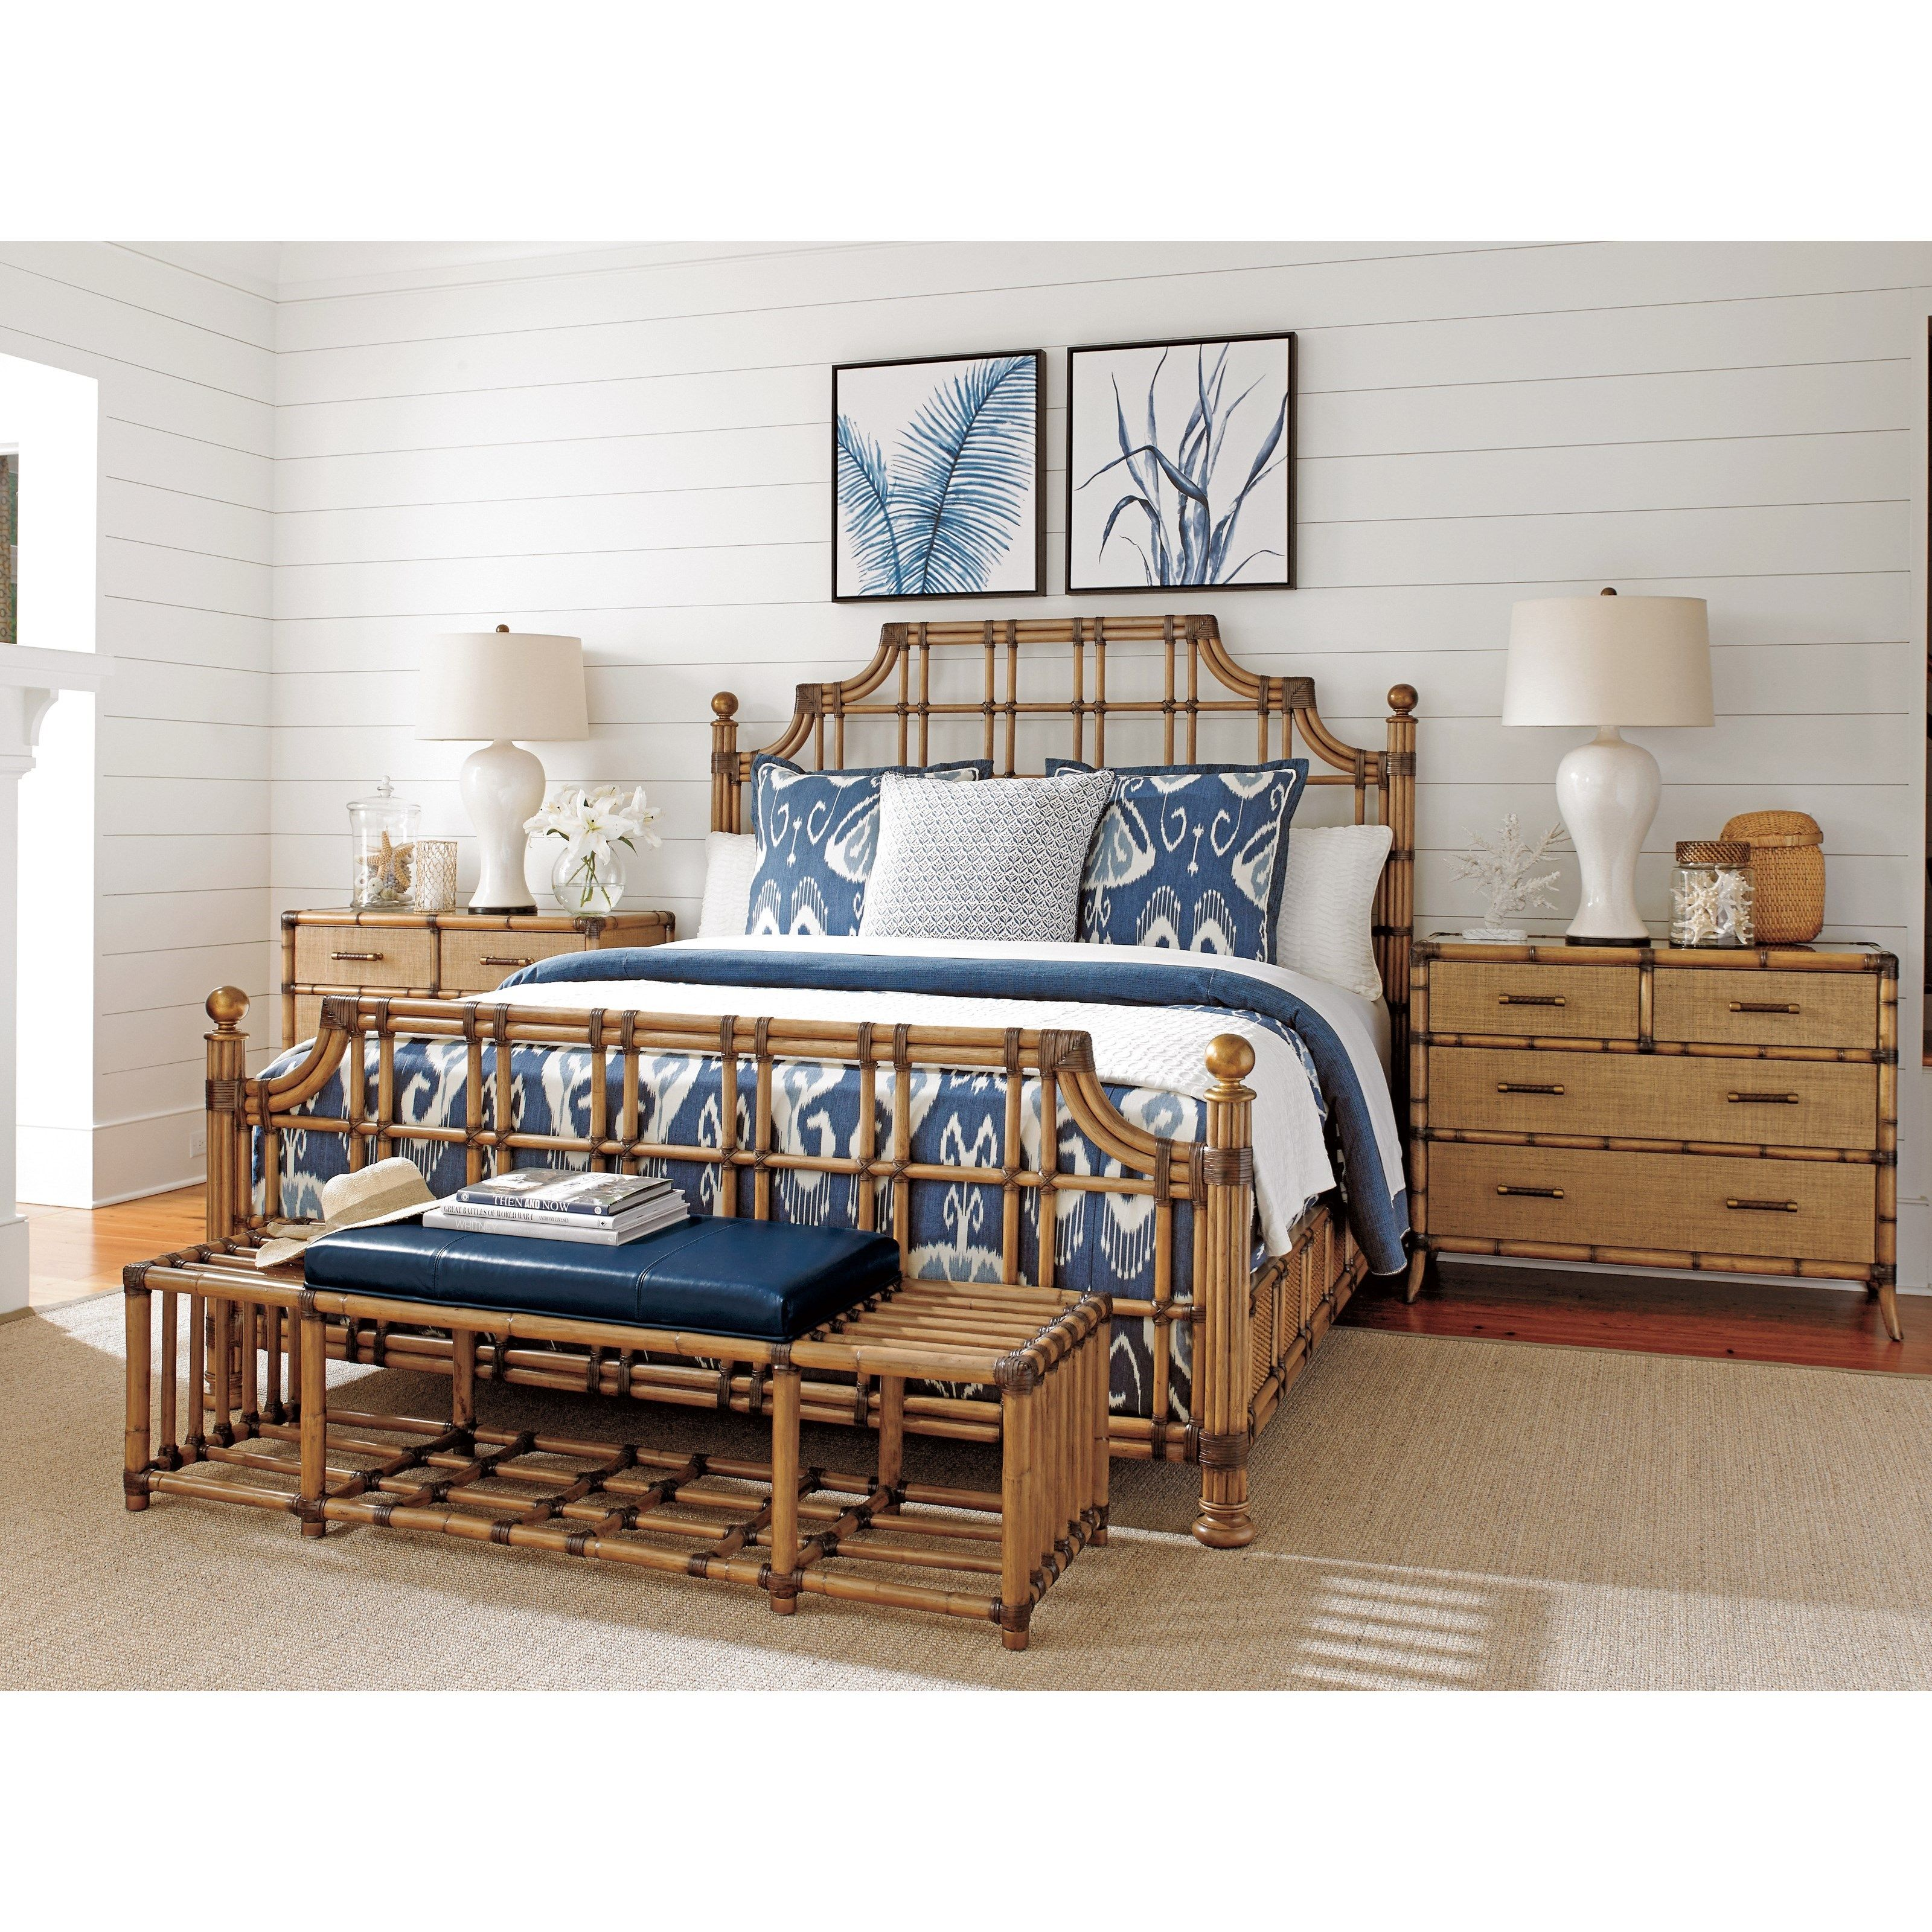 Twin Palms St. Kitts Woven Rattan Bed Queen Size With